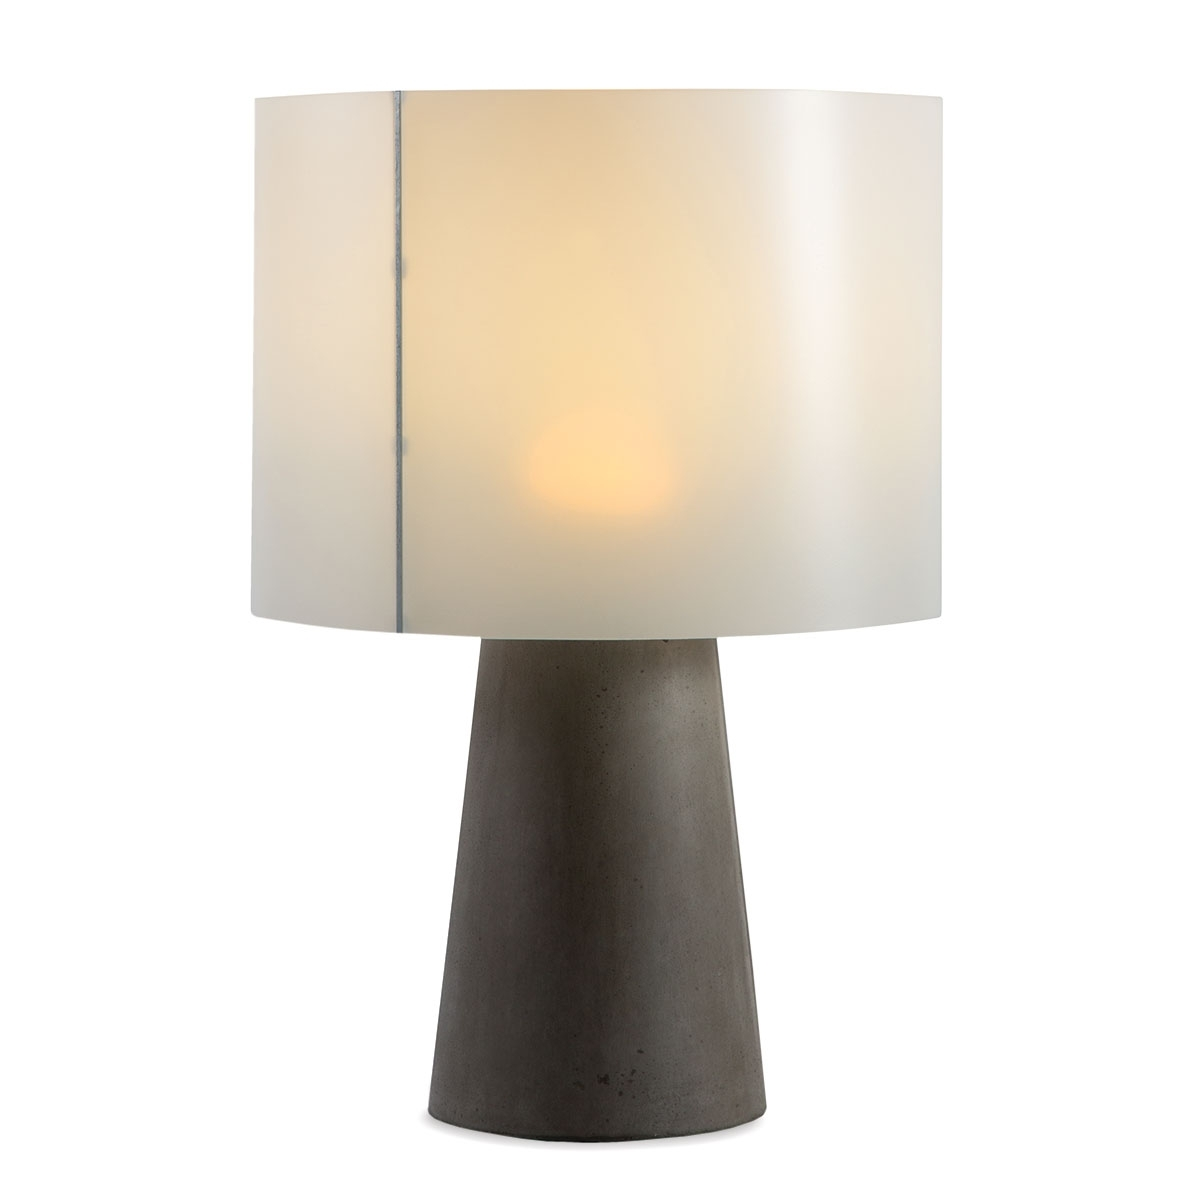 Latest Living Room Table Lamps At Target In Lamp : Outdoor Cordless Concrete Table Lamp Dark Gray Items Creation (View 12 of 15)